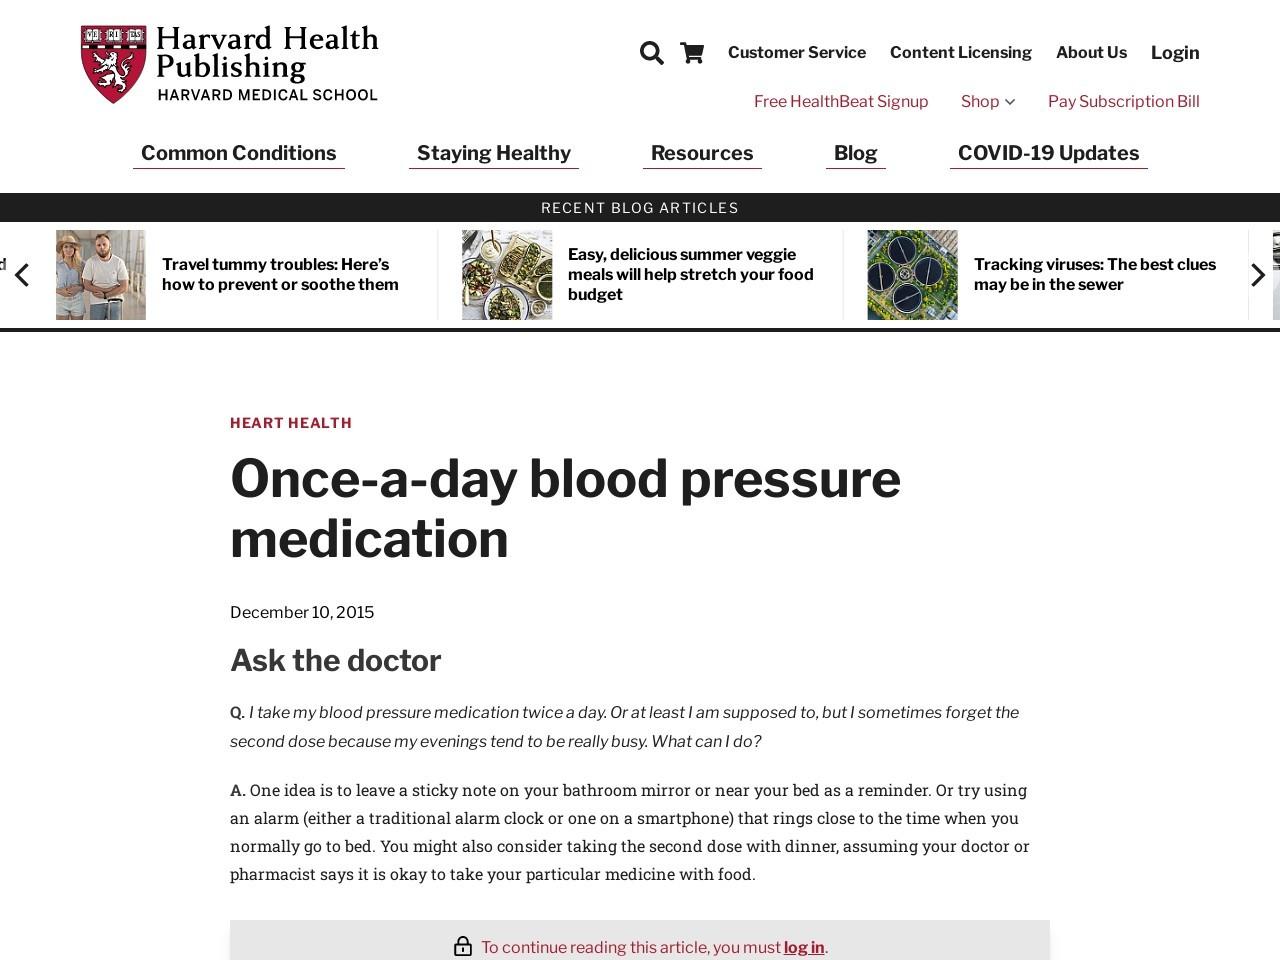 Once-a-day blood pressure medication